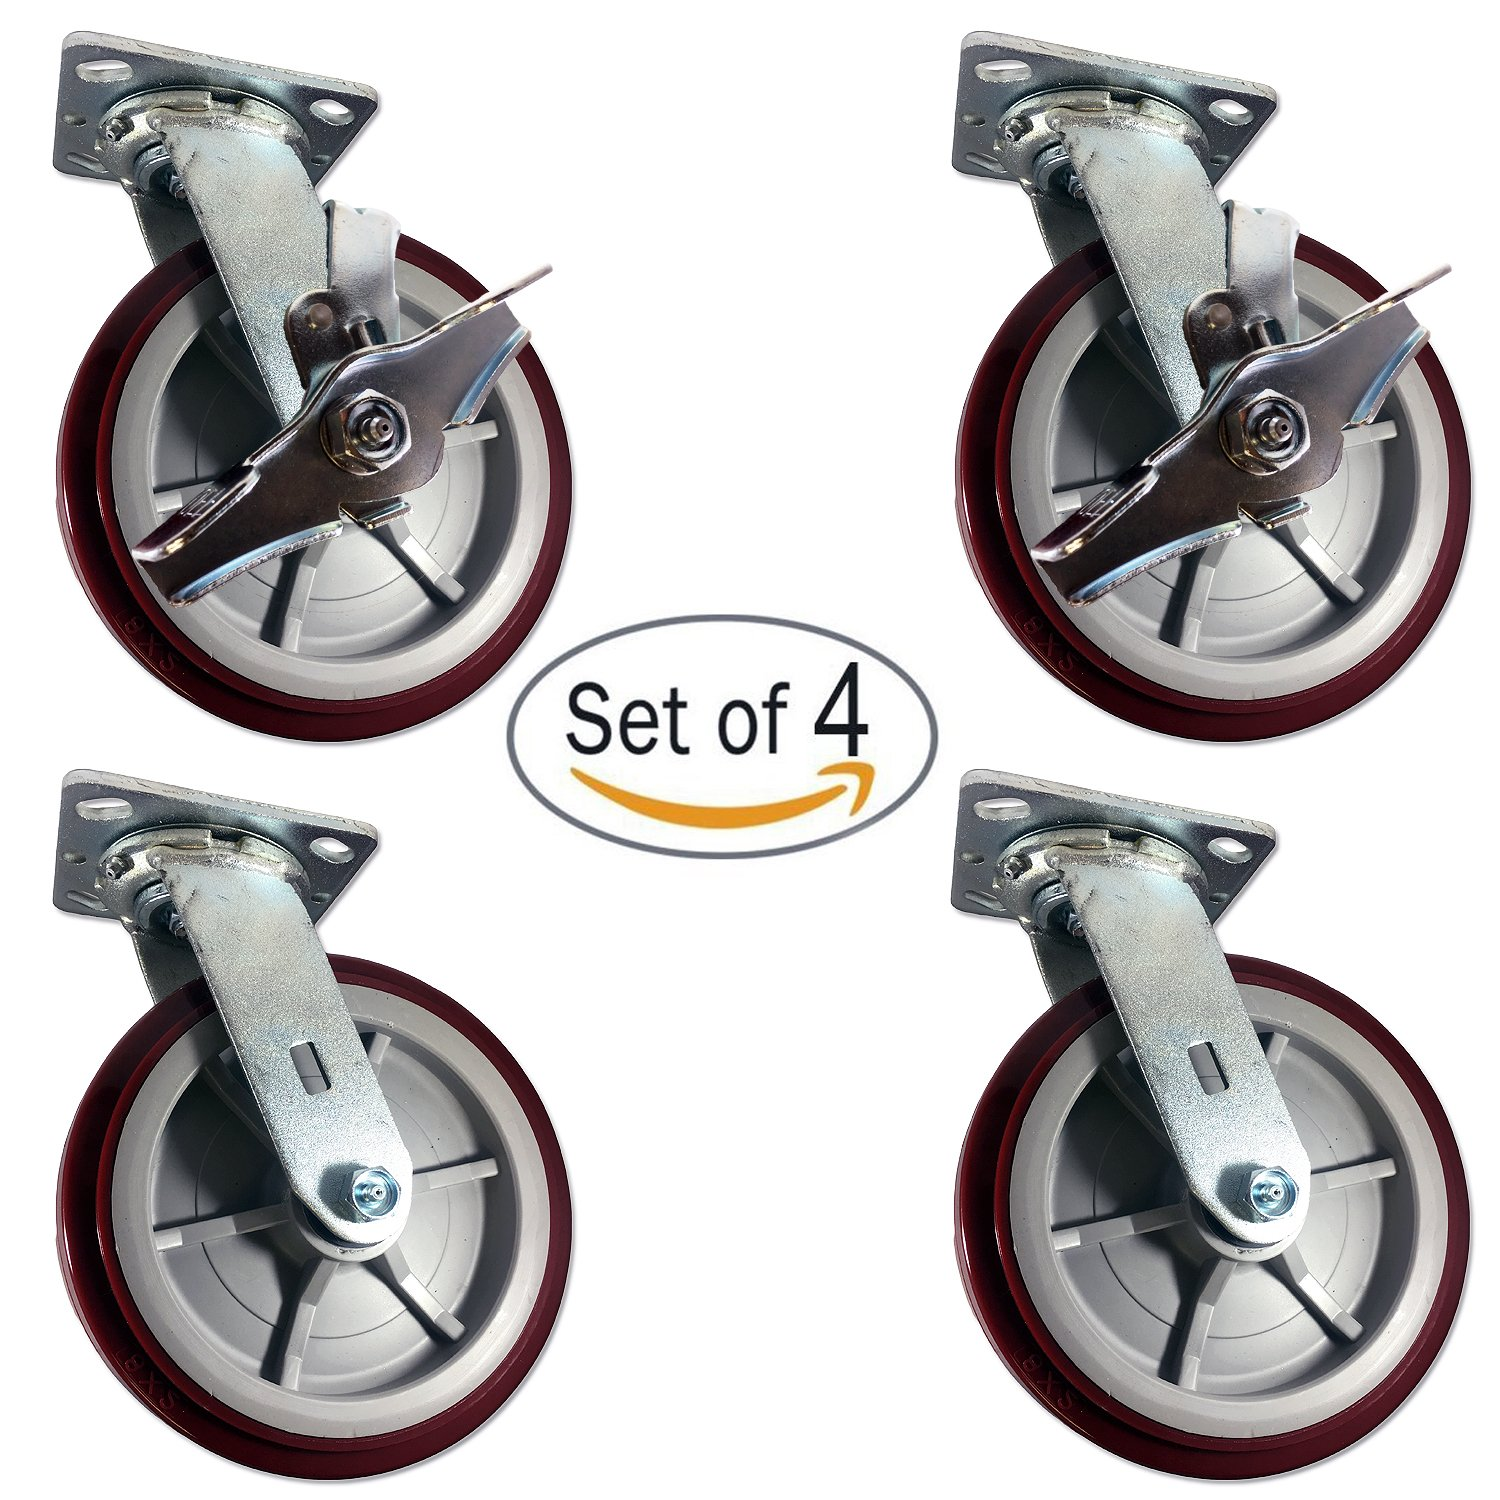 Caster Barn - Heavy Duty Polyurethane Swivel Casters with Brake, 8'' x 2'' Size (Pack of 4)